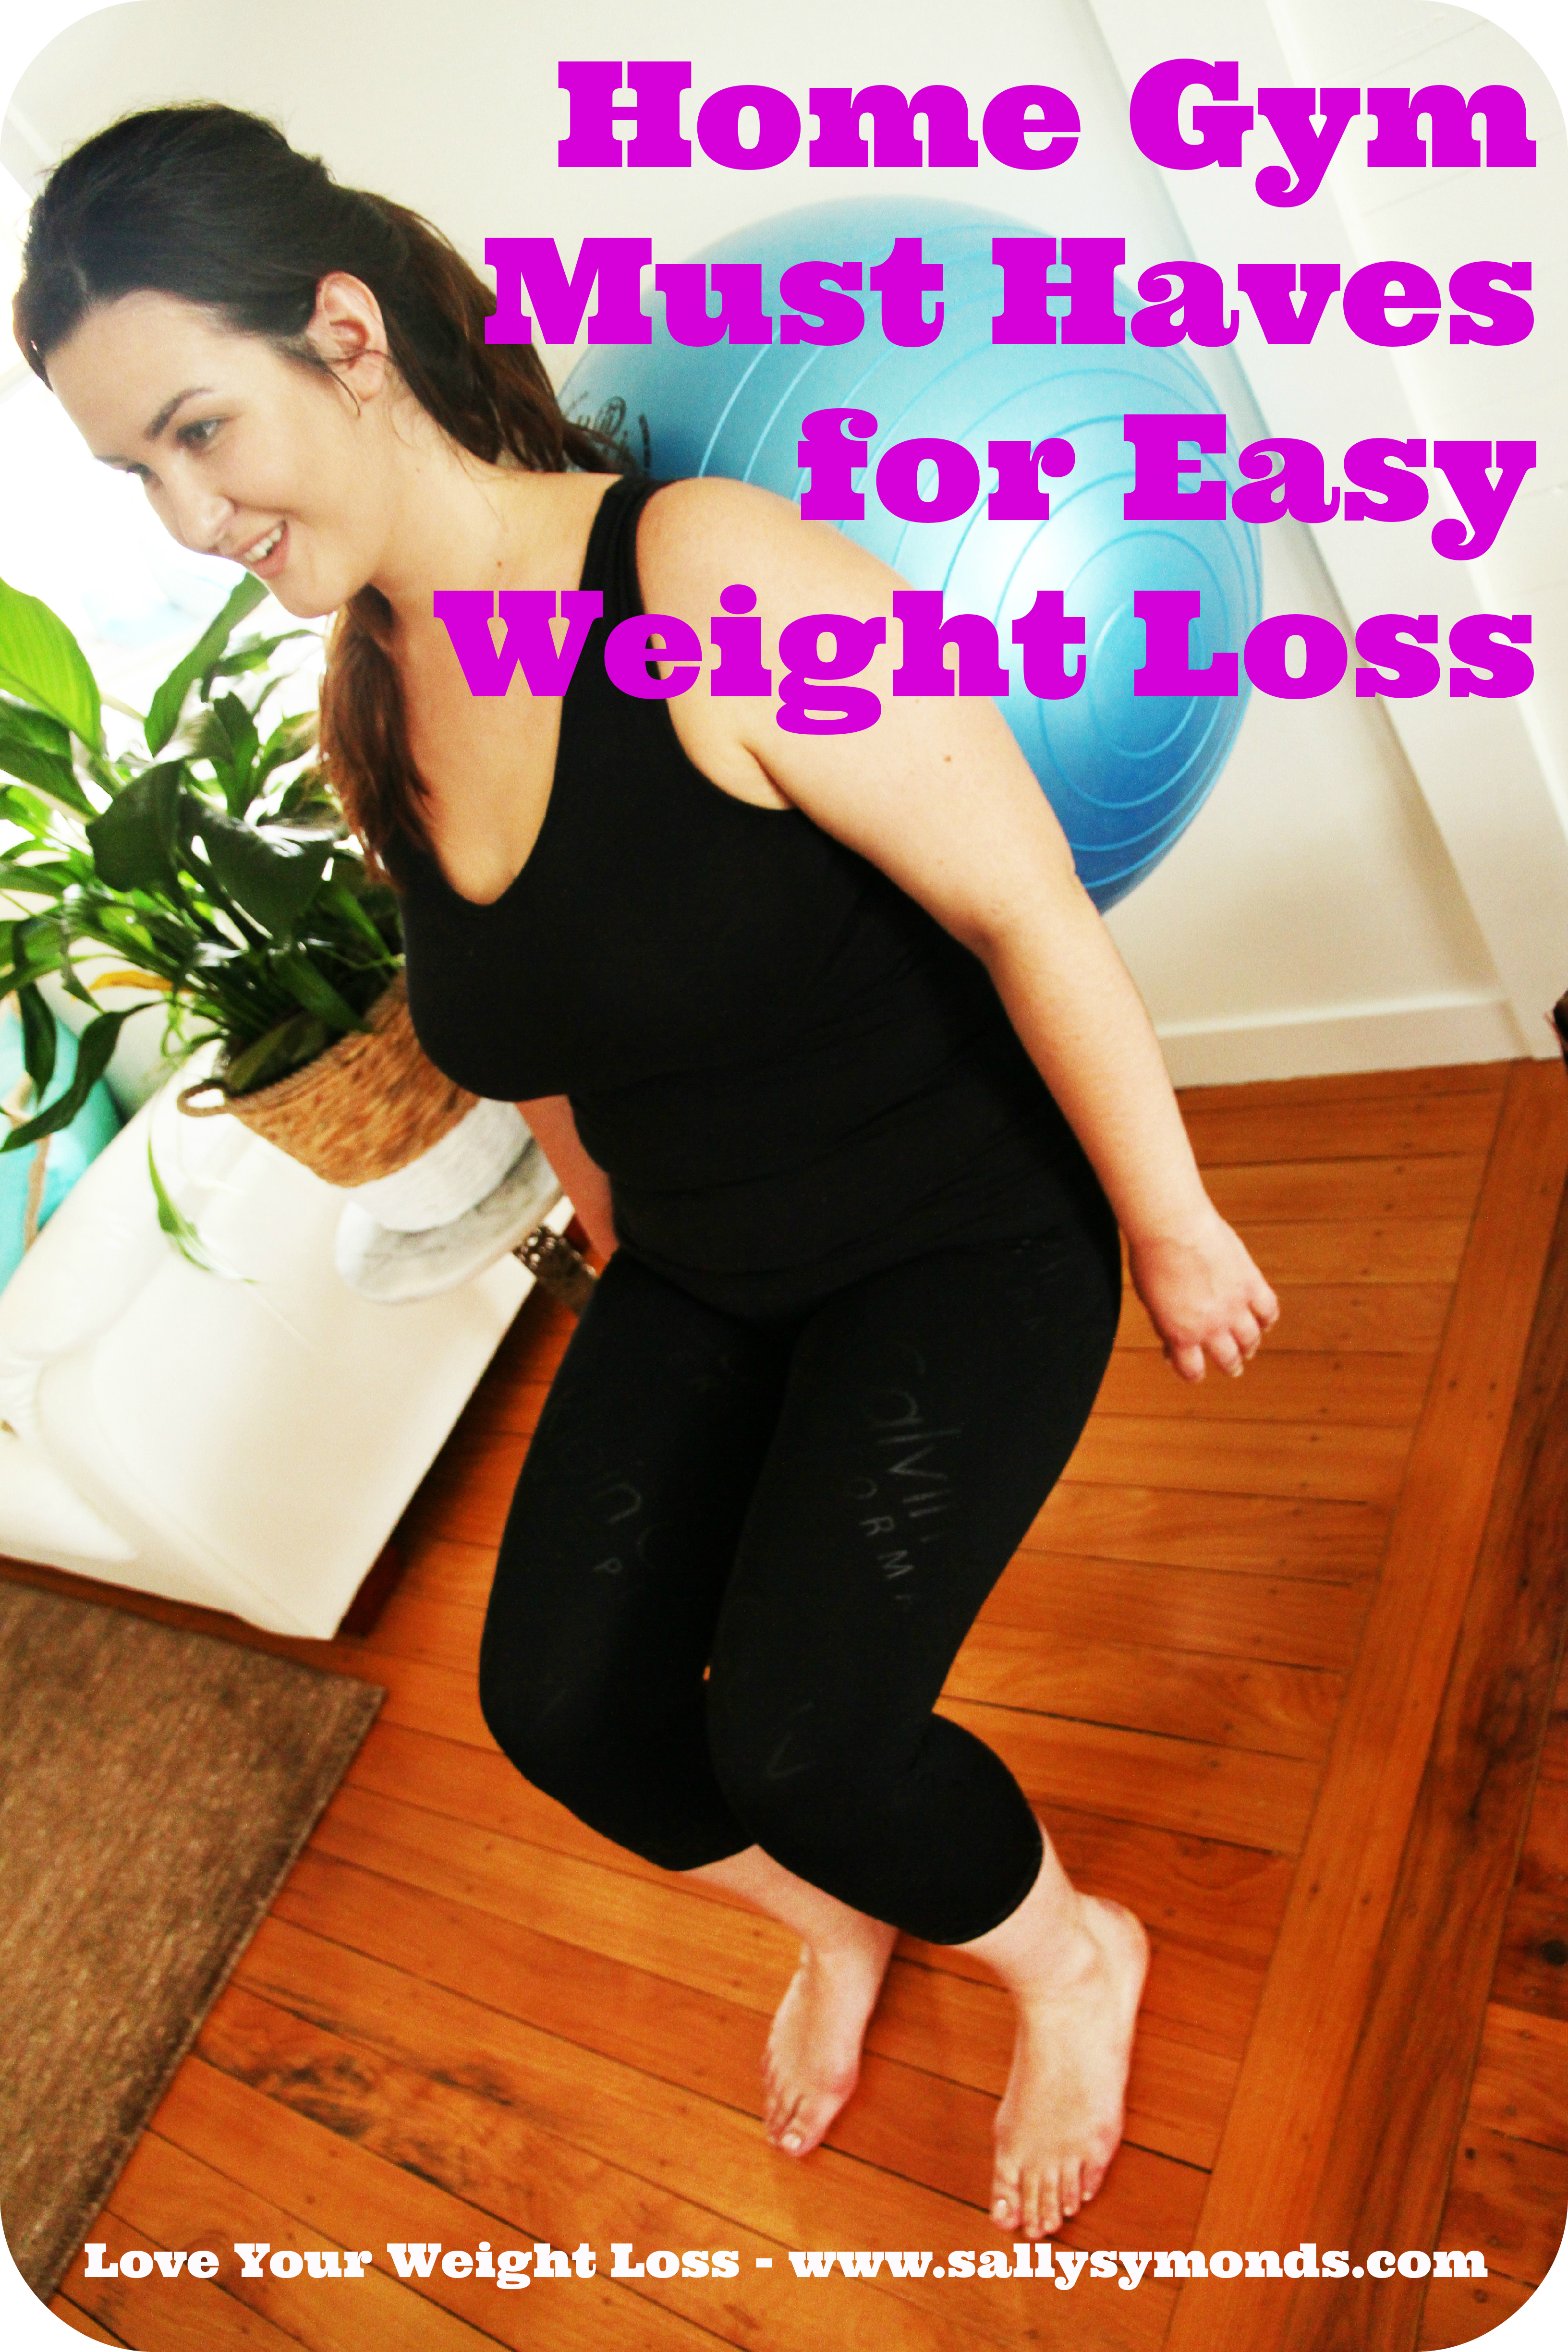 Home gym must haves for easy weight loss sally symonds